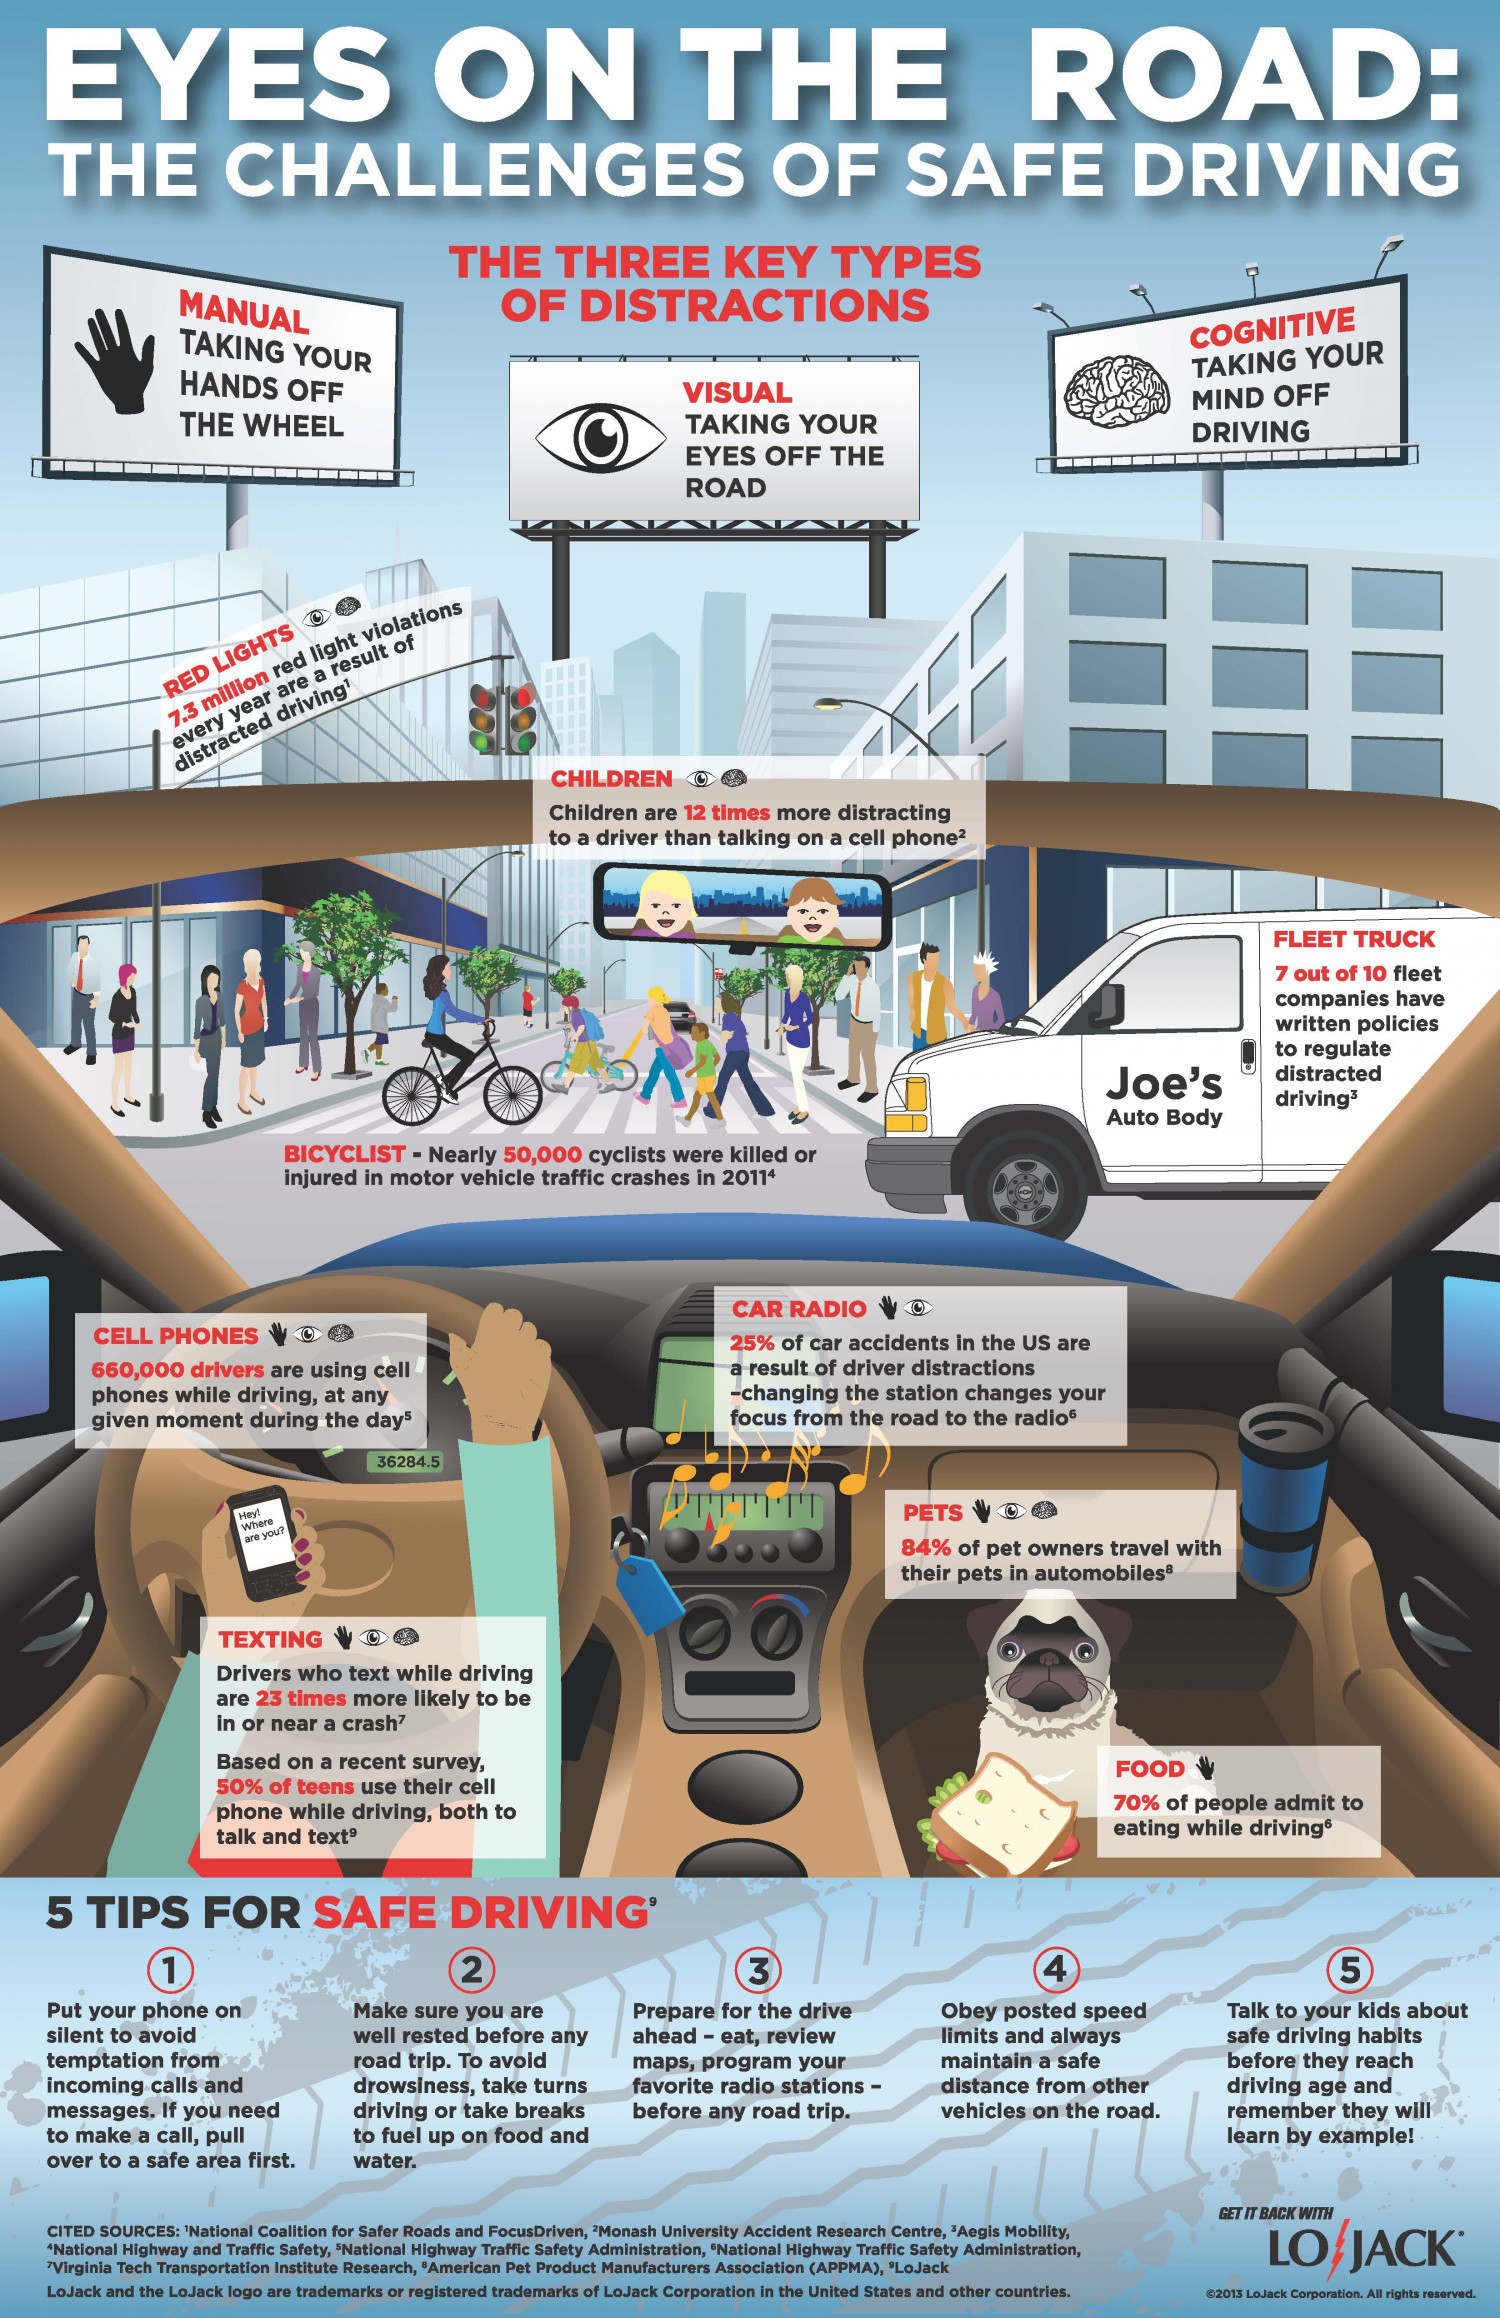 Eyes on the Road: The Challenges of Safe Driving Infographic